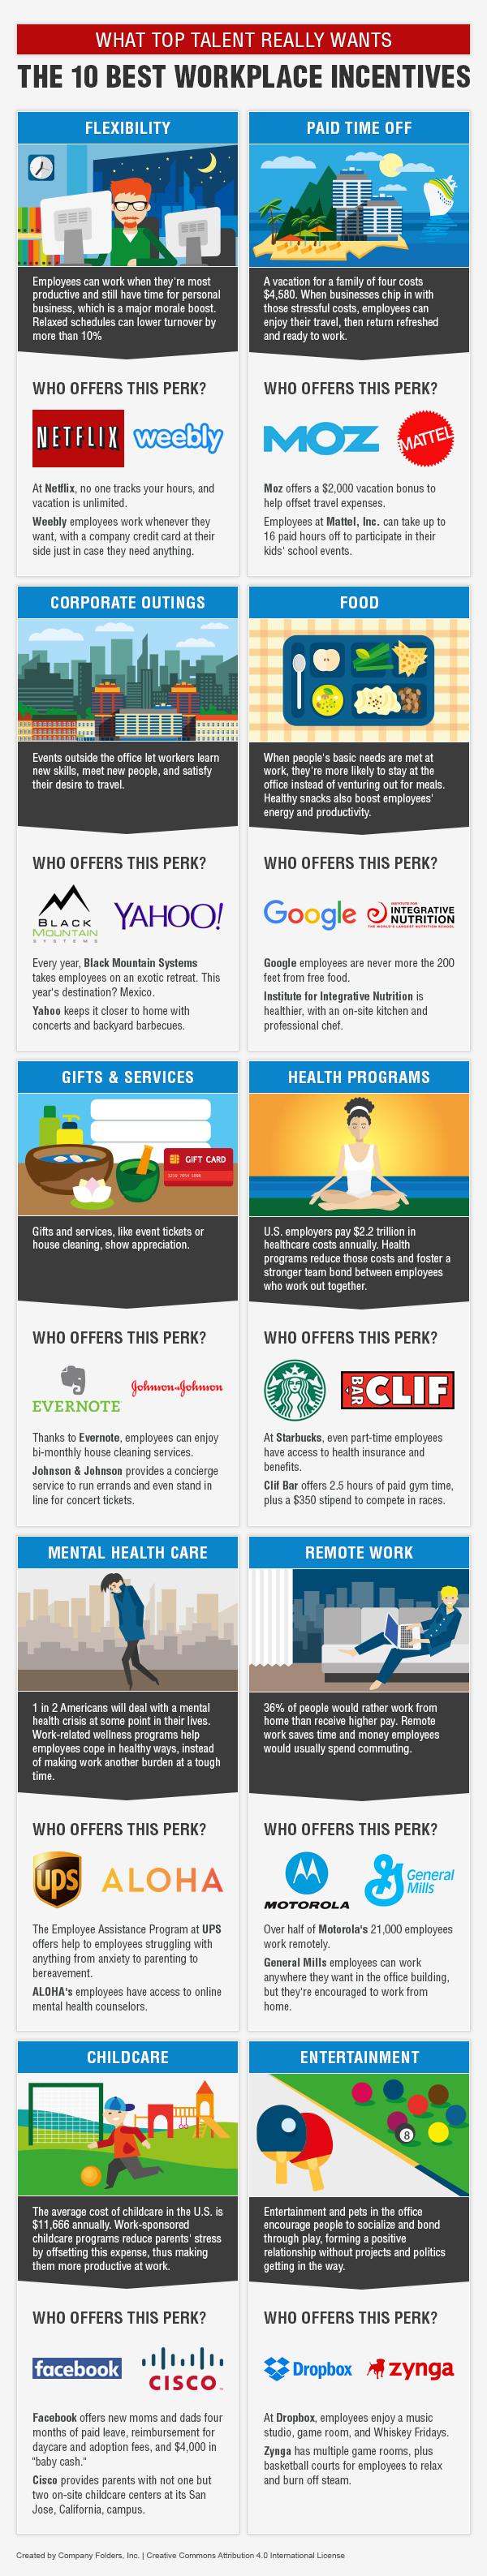 10 Employee Perks To Attract Top Talent